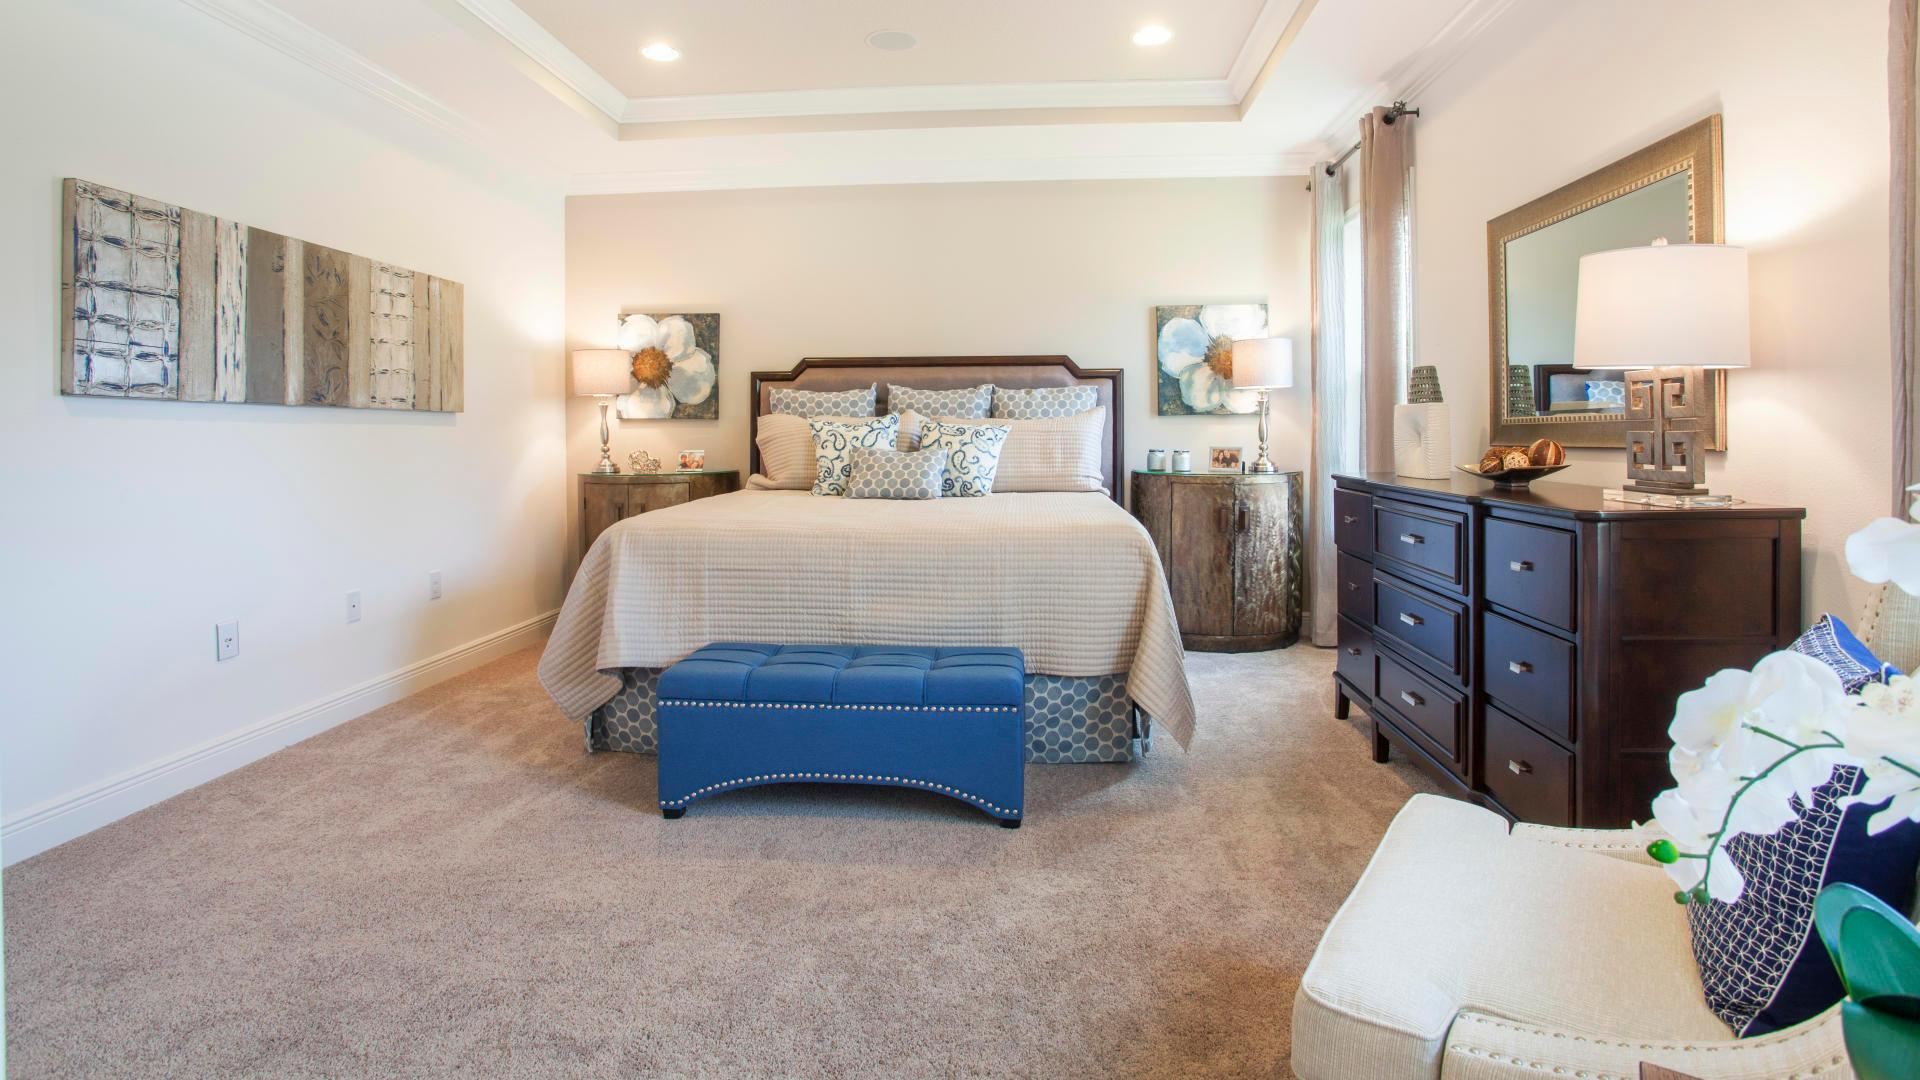 Bedroom featured in the Melody By Maronda Homes in Punta Gorda, FL